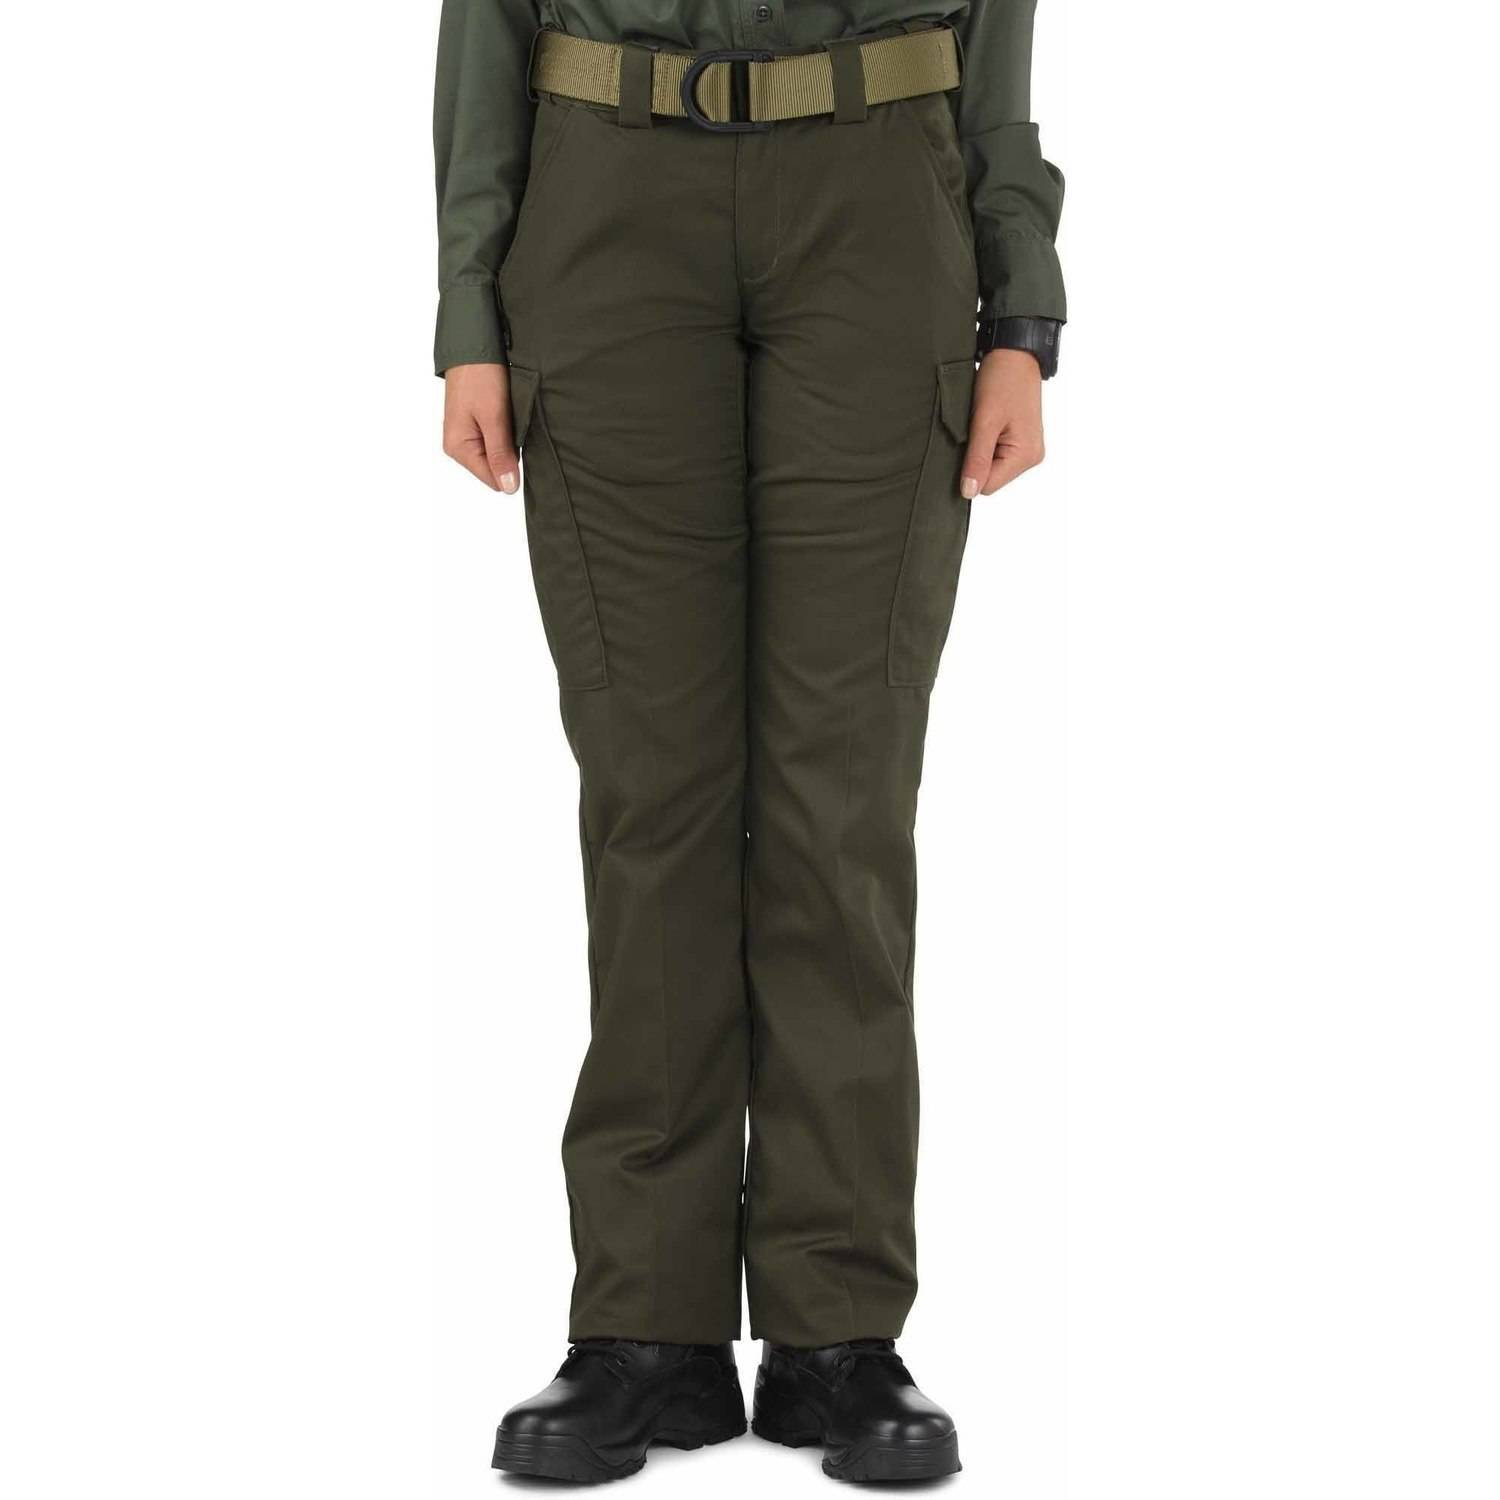 5.11 Tactical Women's Twill PDU Class-B Pants, Sheriff Green